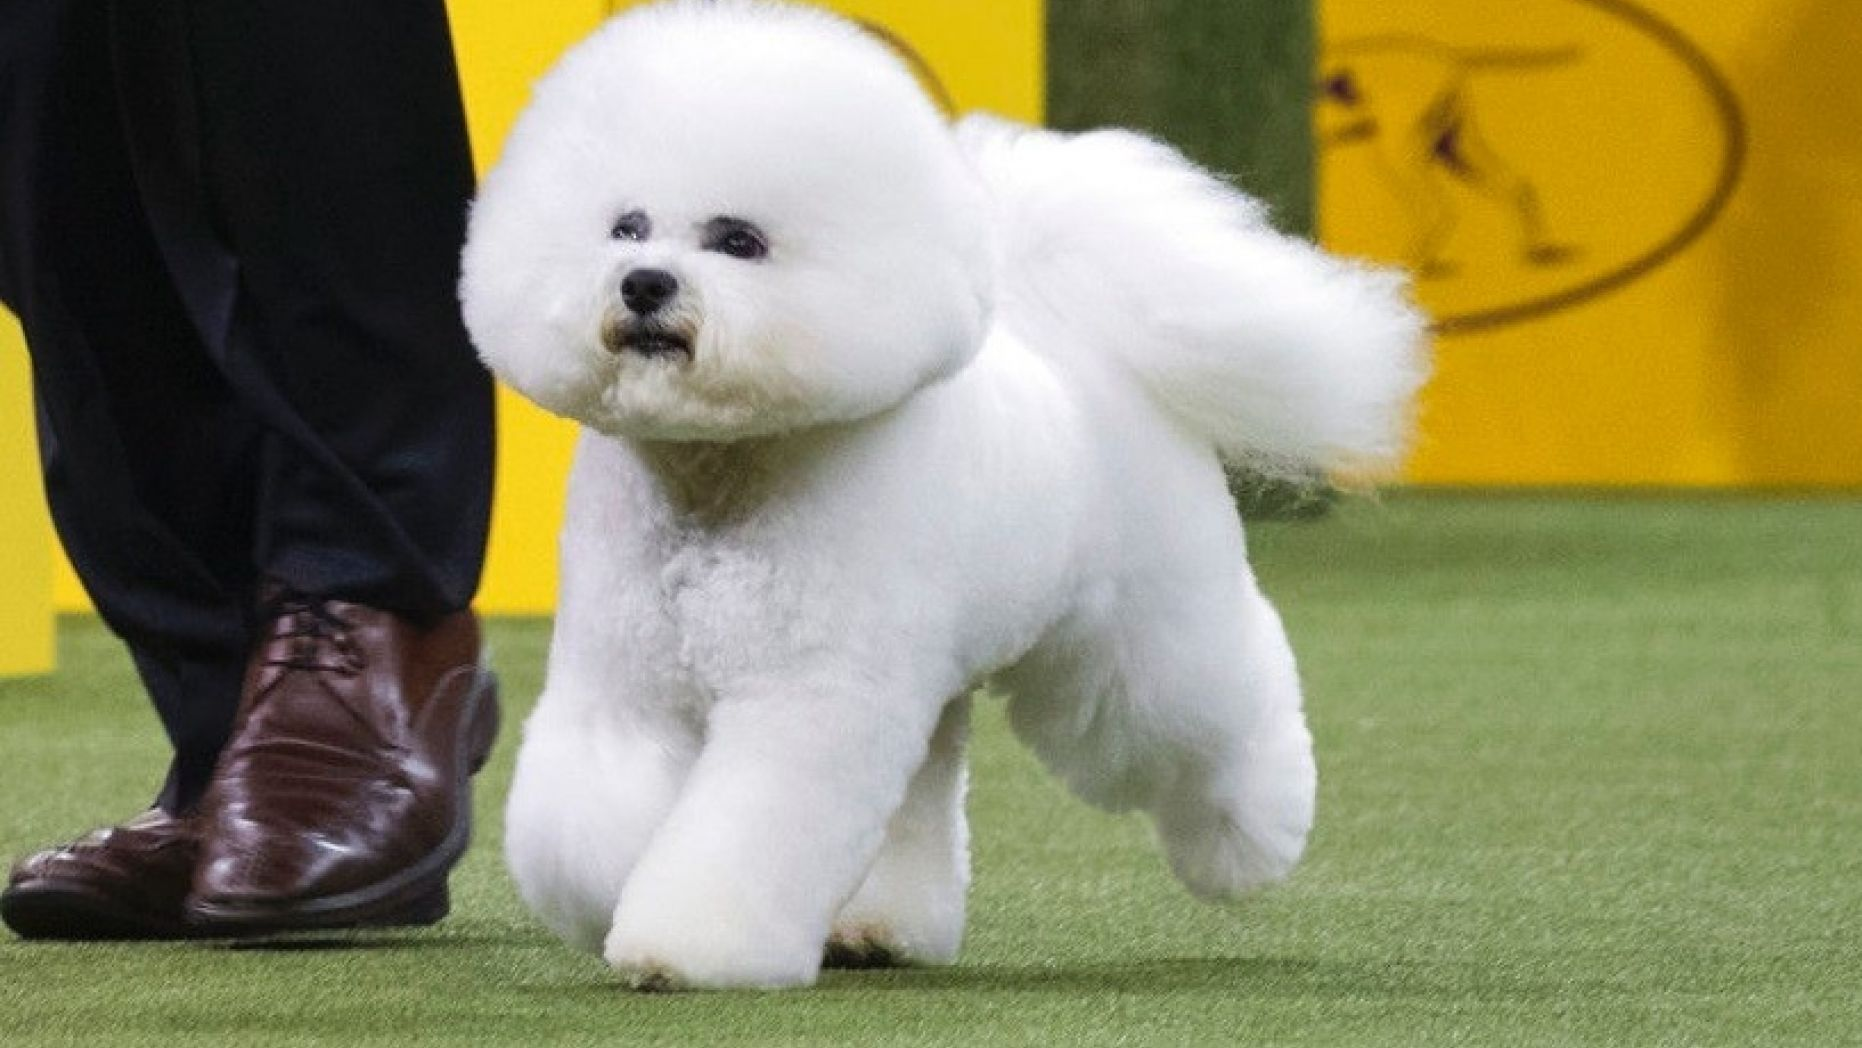 Westminster Dog Show 2018 And The Winner Is Flynn The Bichon Westminster Dog Show Bichon Dog Bichon